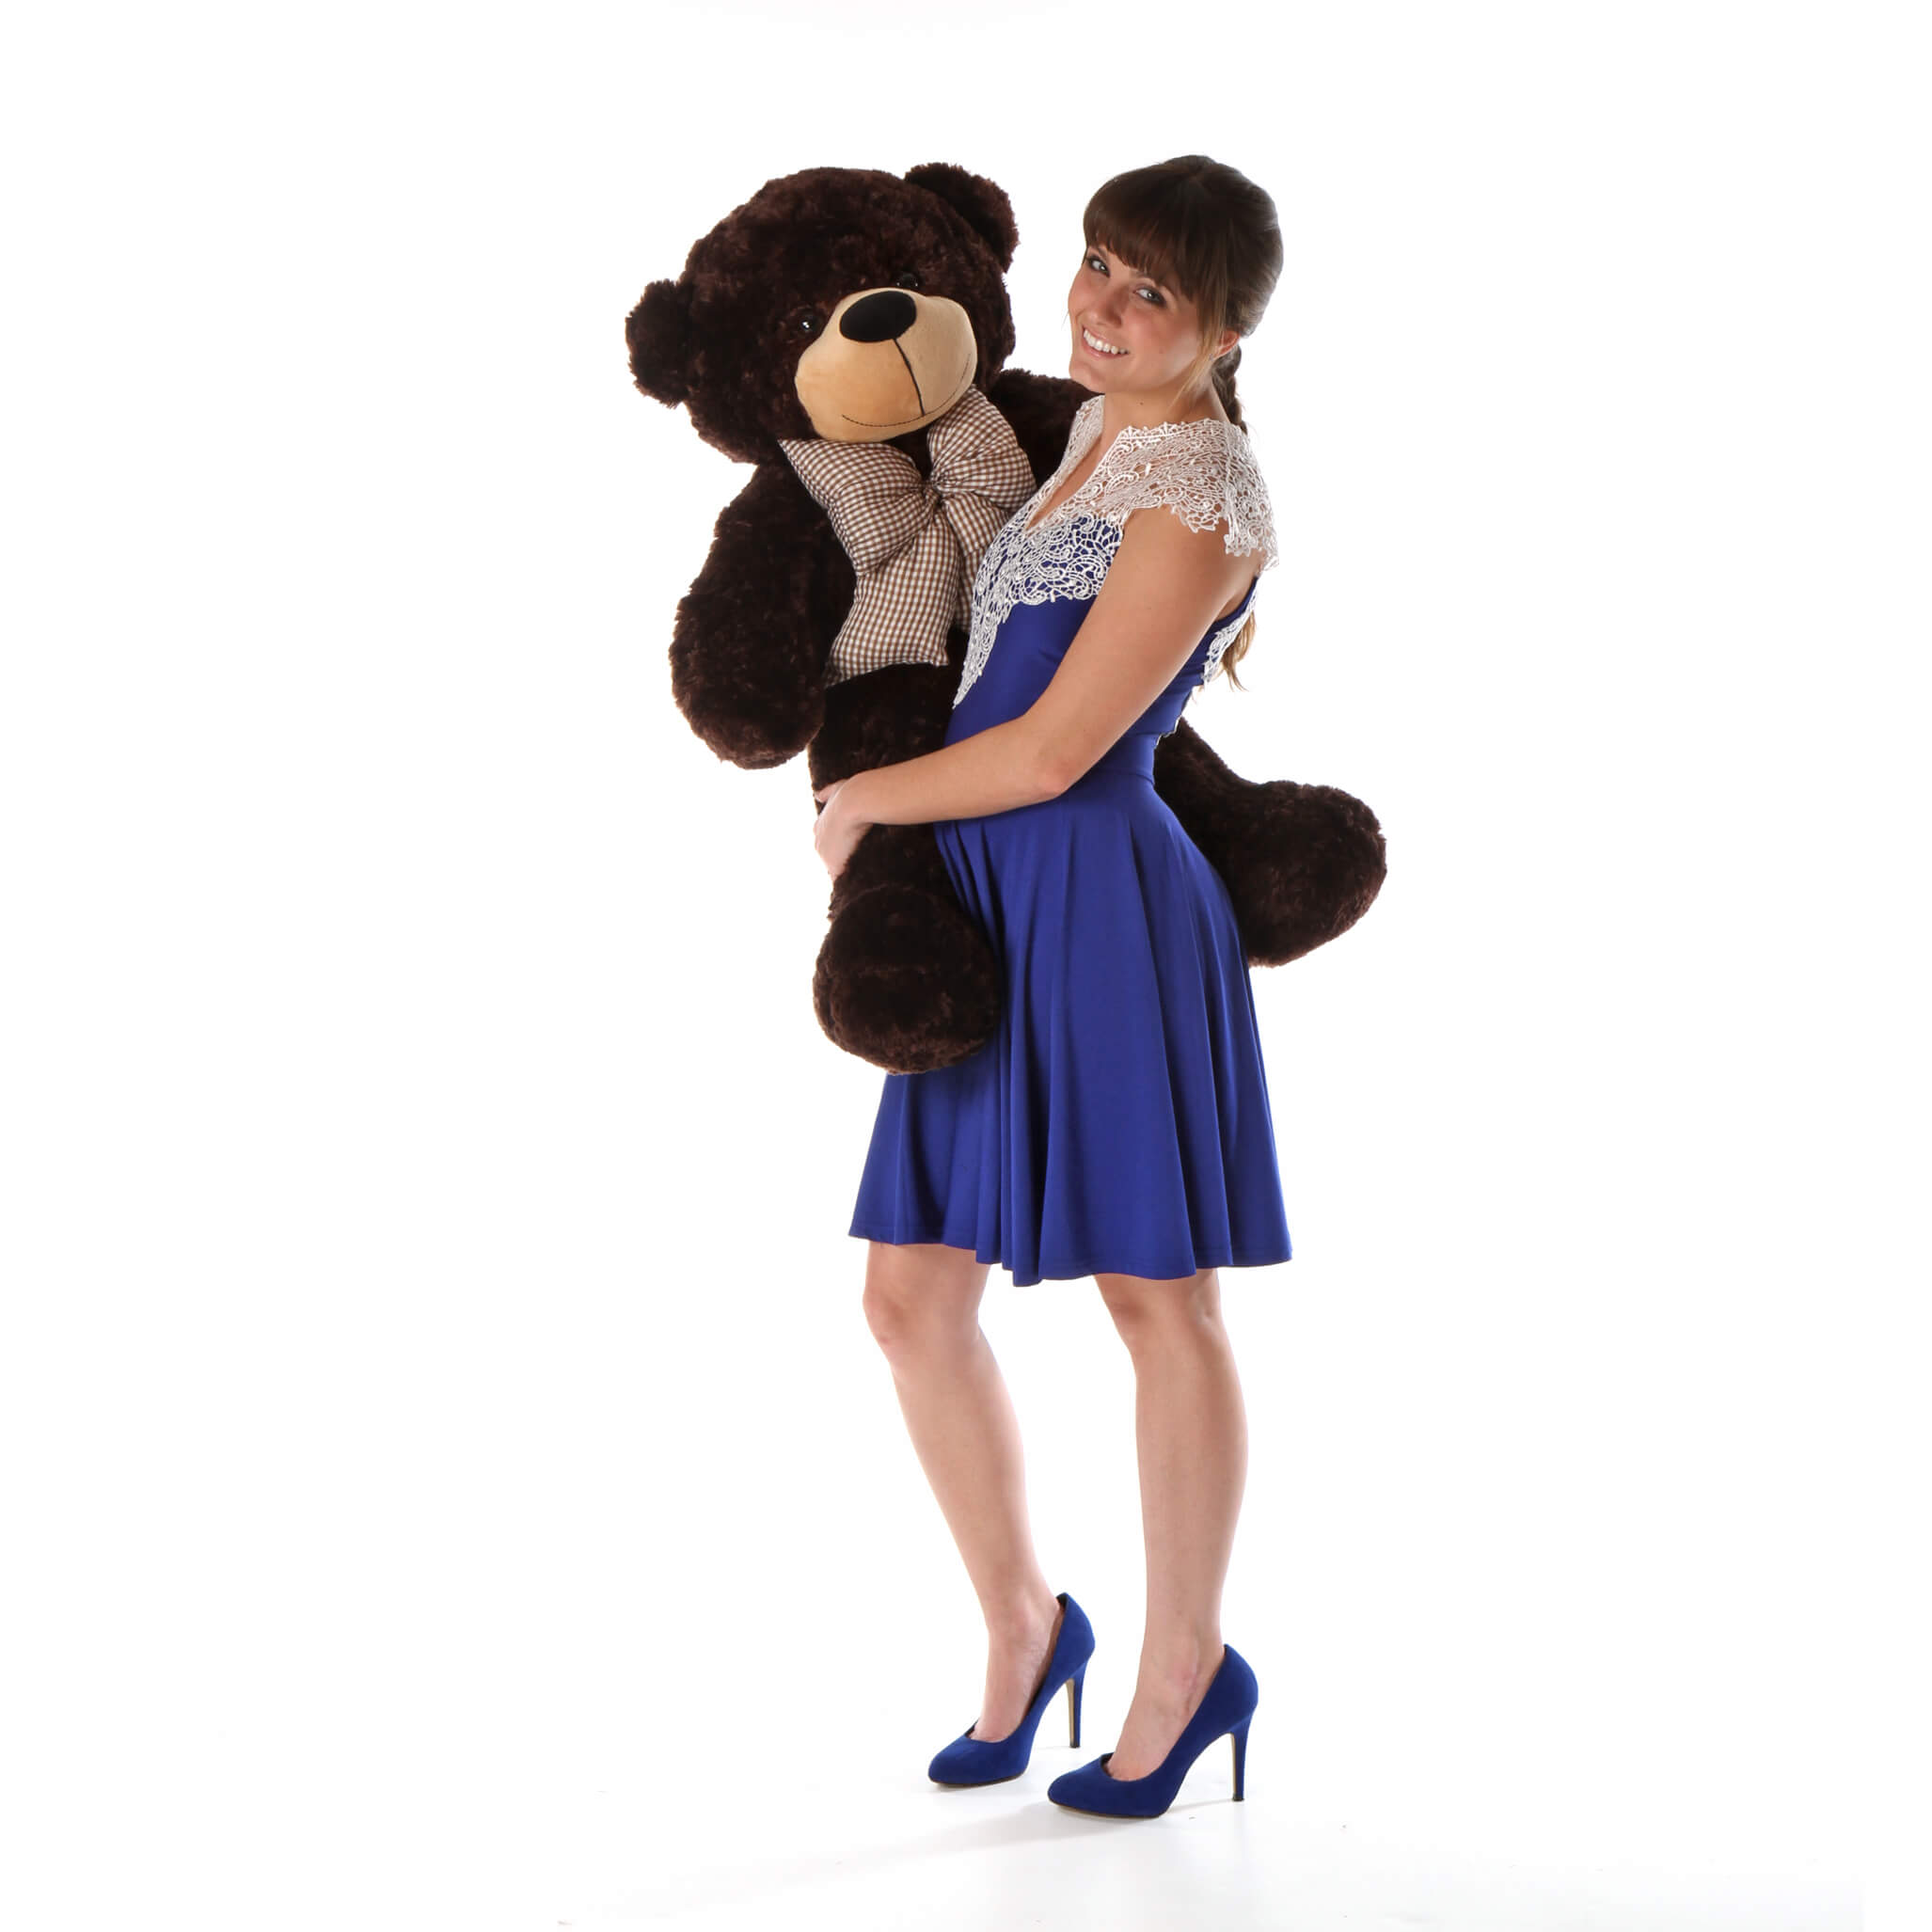 over-3ft-tall-teddy-bear-brownie-cuddles-is-so-soft-and-cuddly-and-perfect-for-someone-you-love.jpg